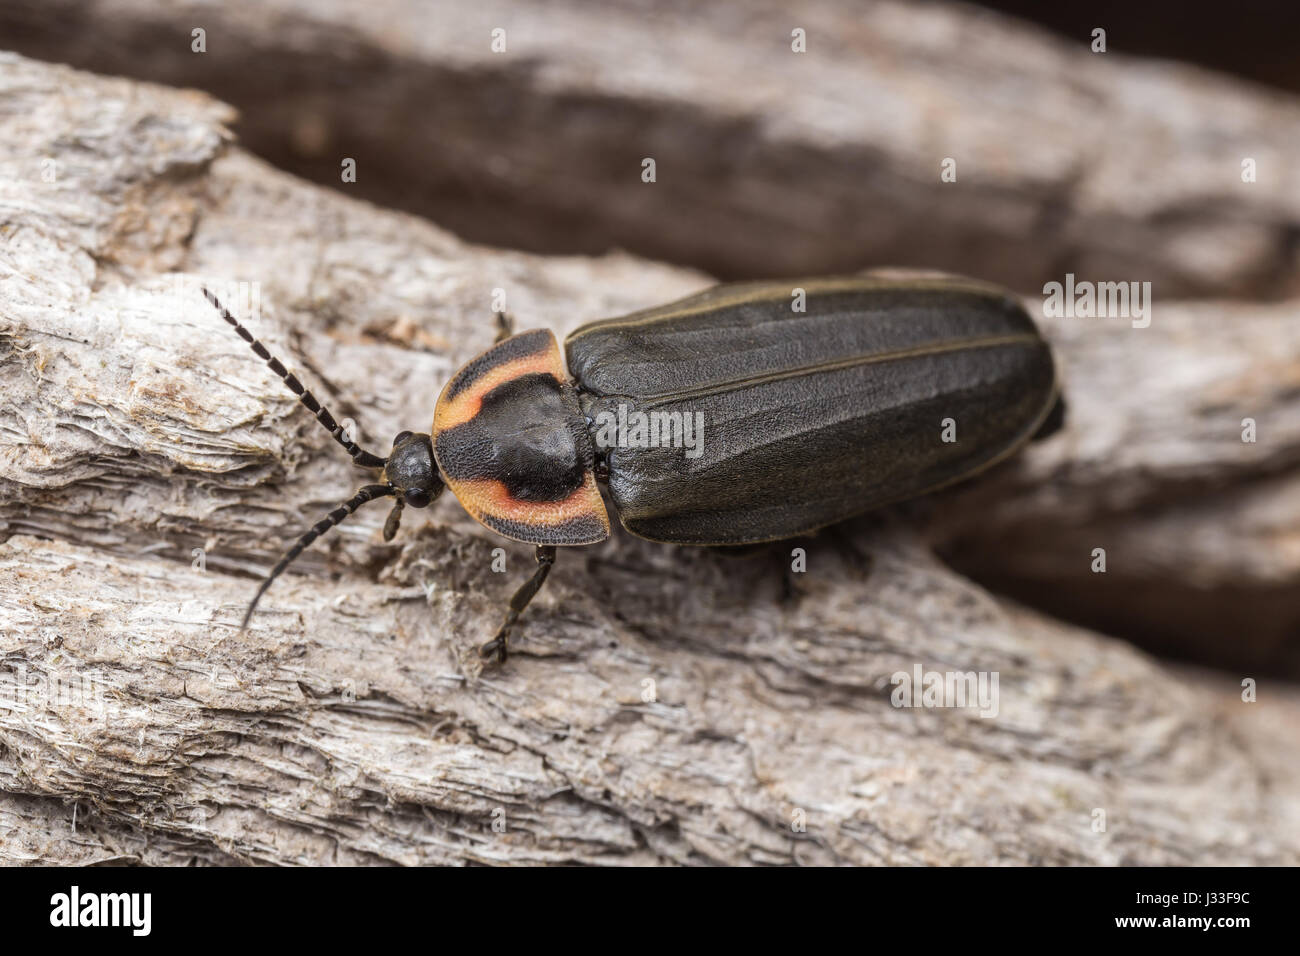 A Winter Firefly (Ellychina corrusca) explores the bark of a tree. - Stock Image